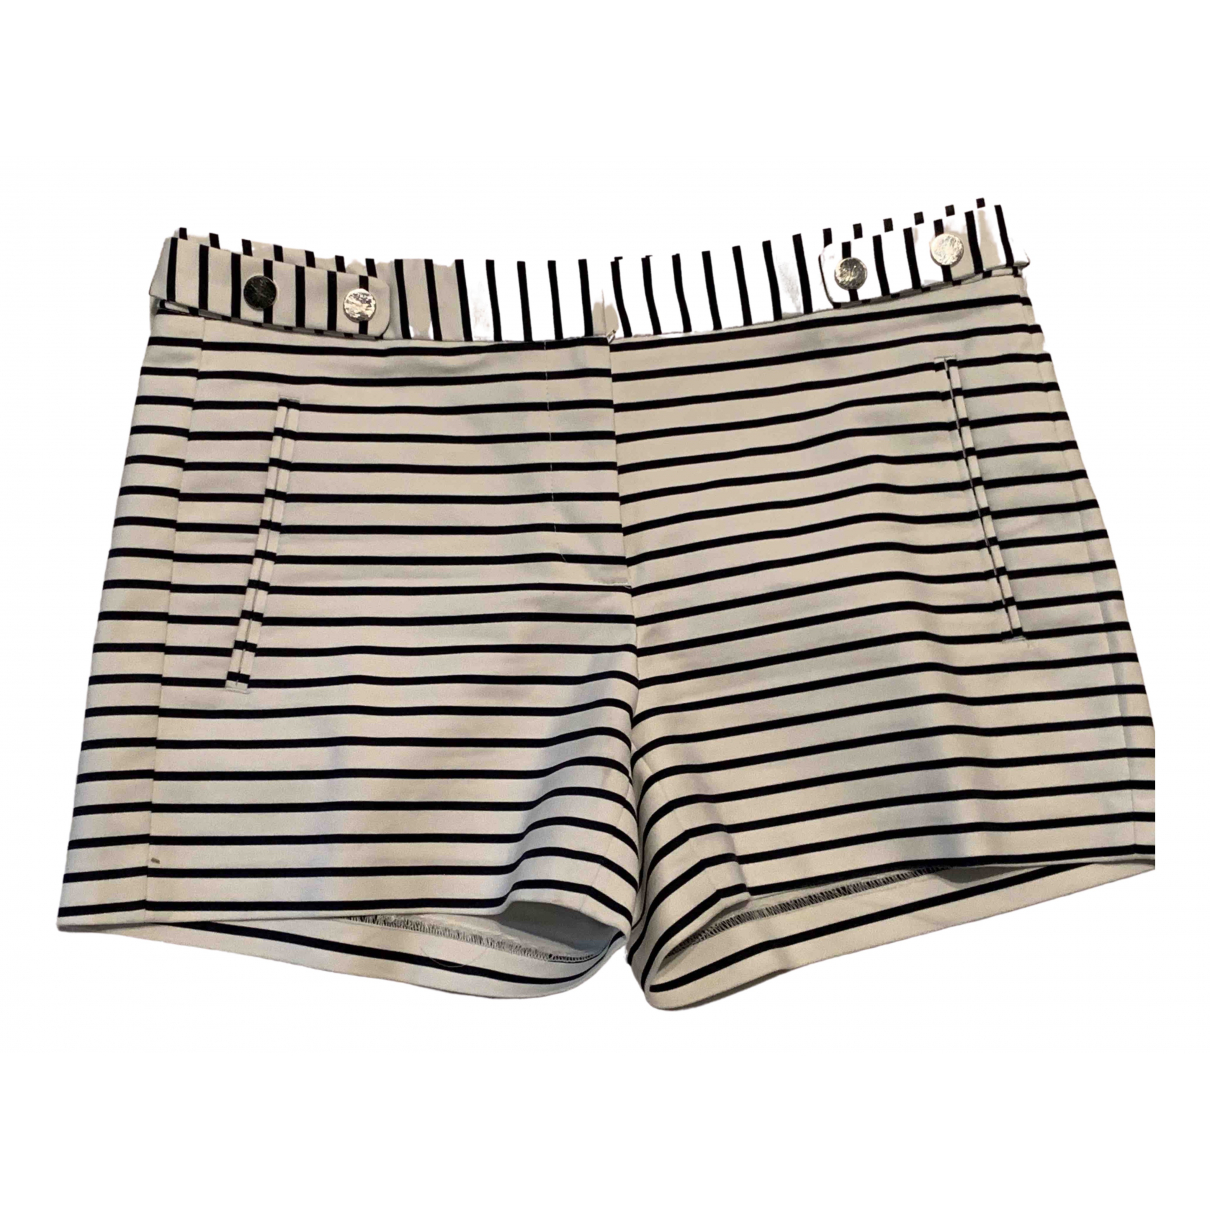 Zara \N White Cotton Shorts for Women S International